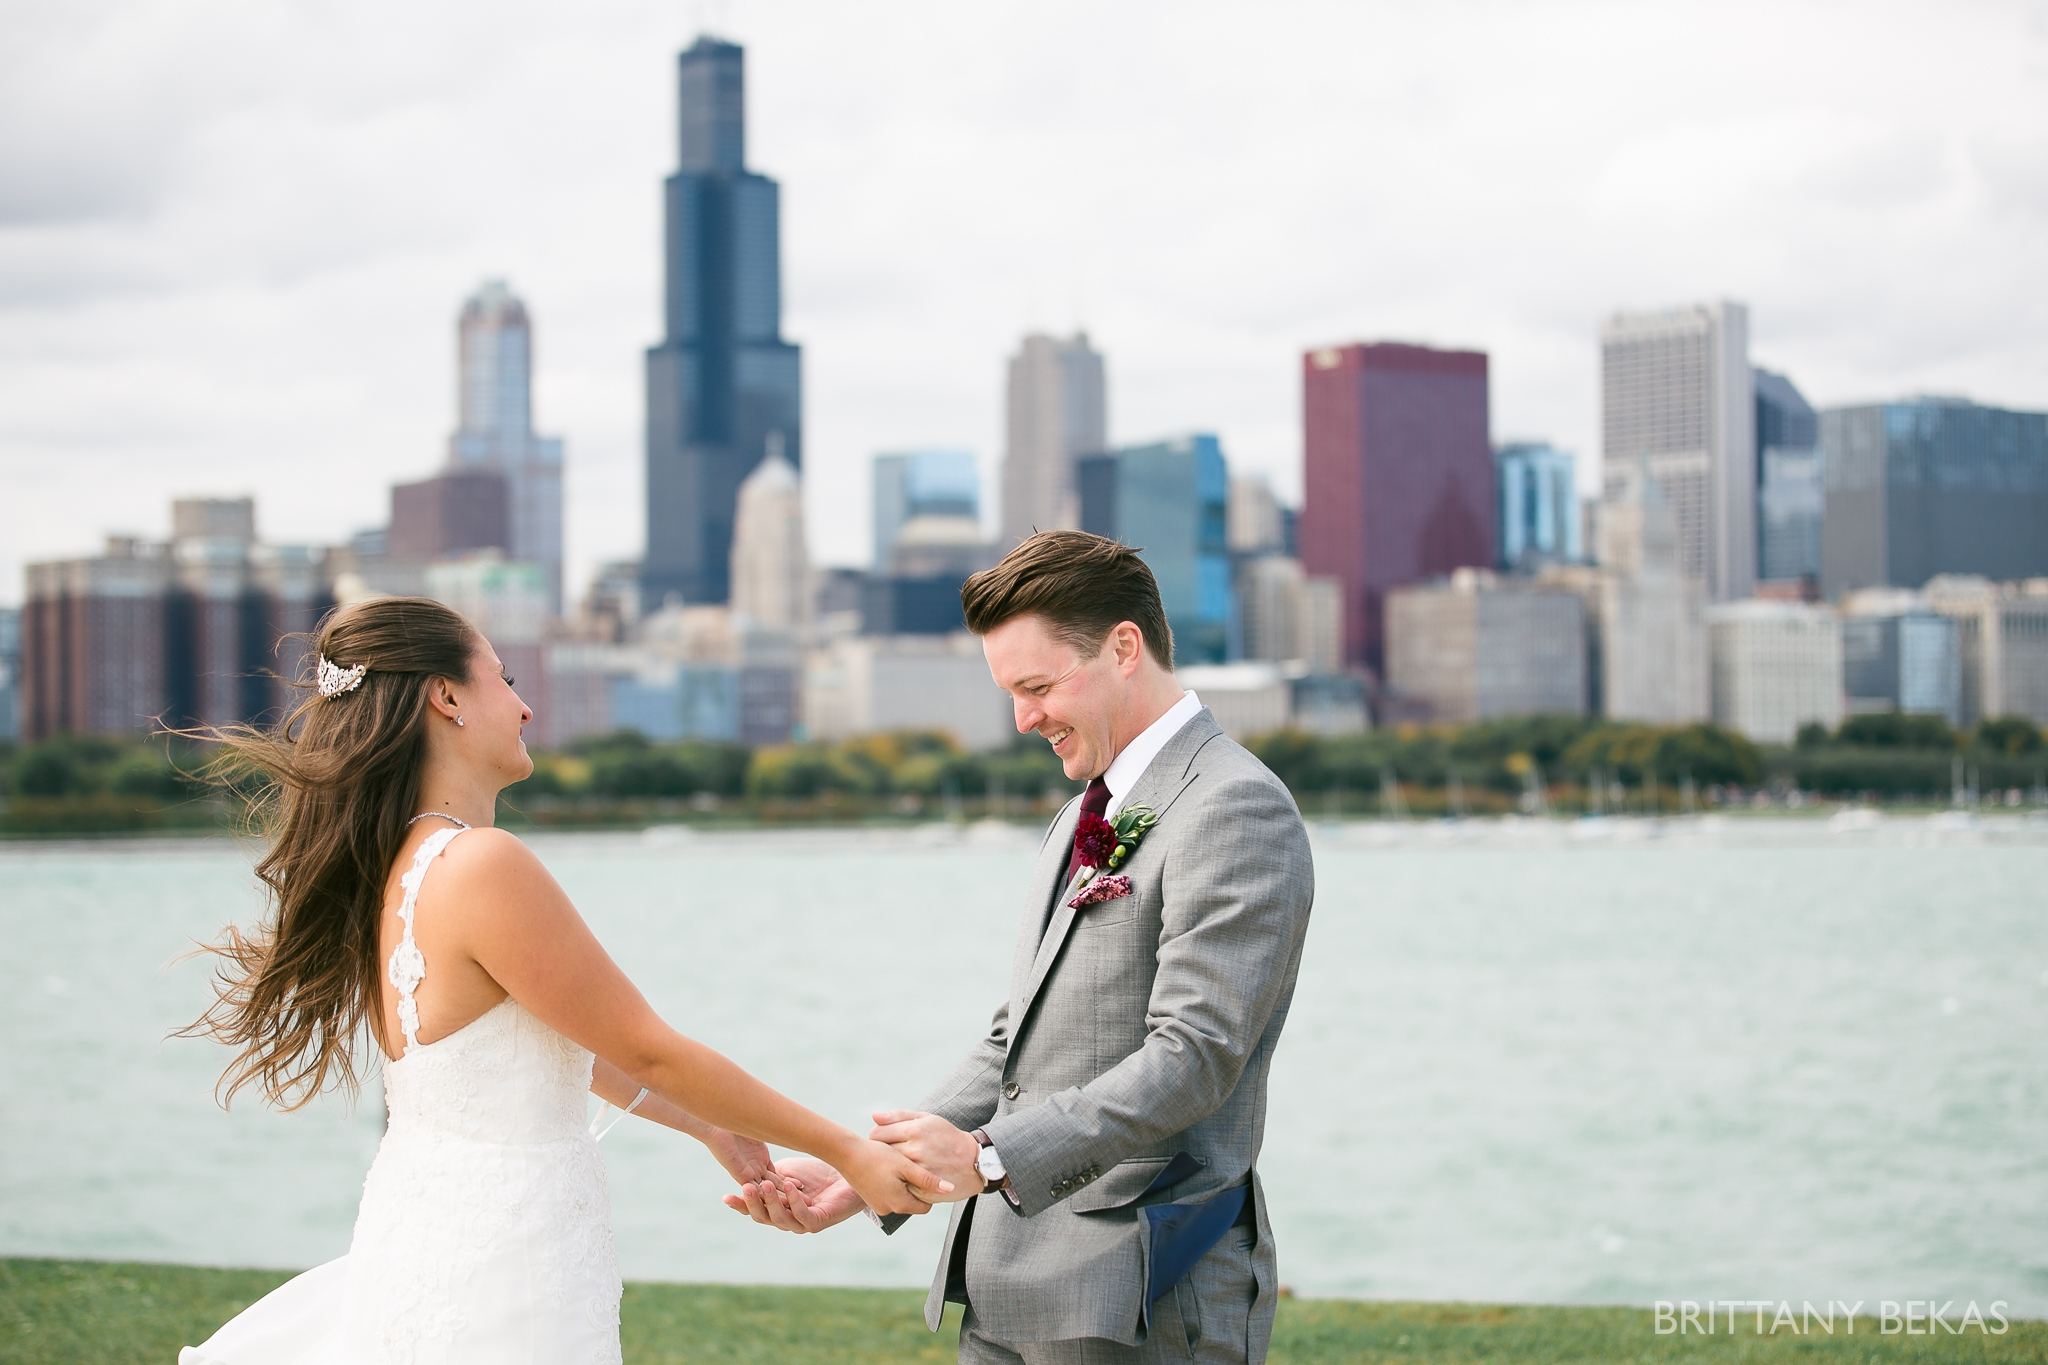 Chicago Wedding Garfield Park Conservatory Wedding Photos - Brittany Bekas Photography_0021